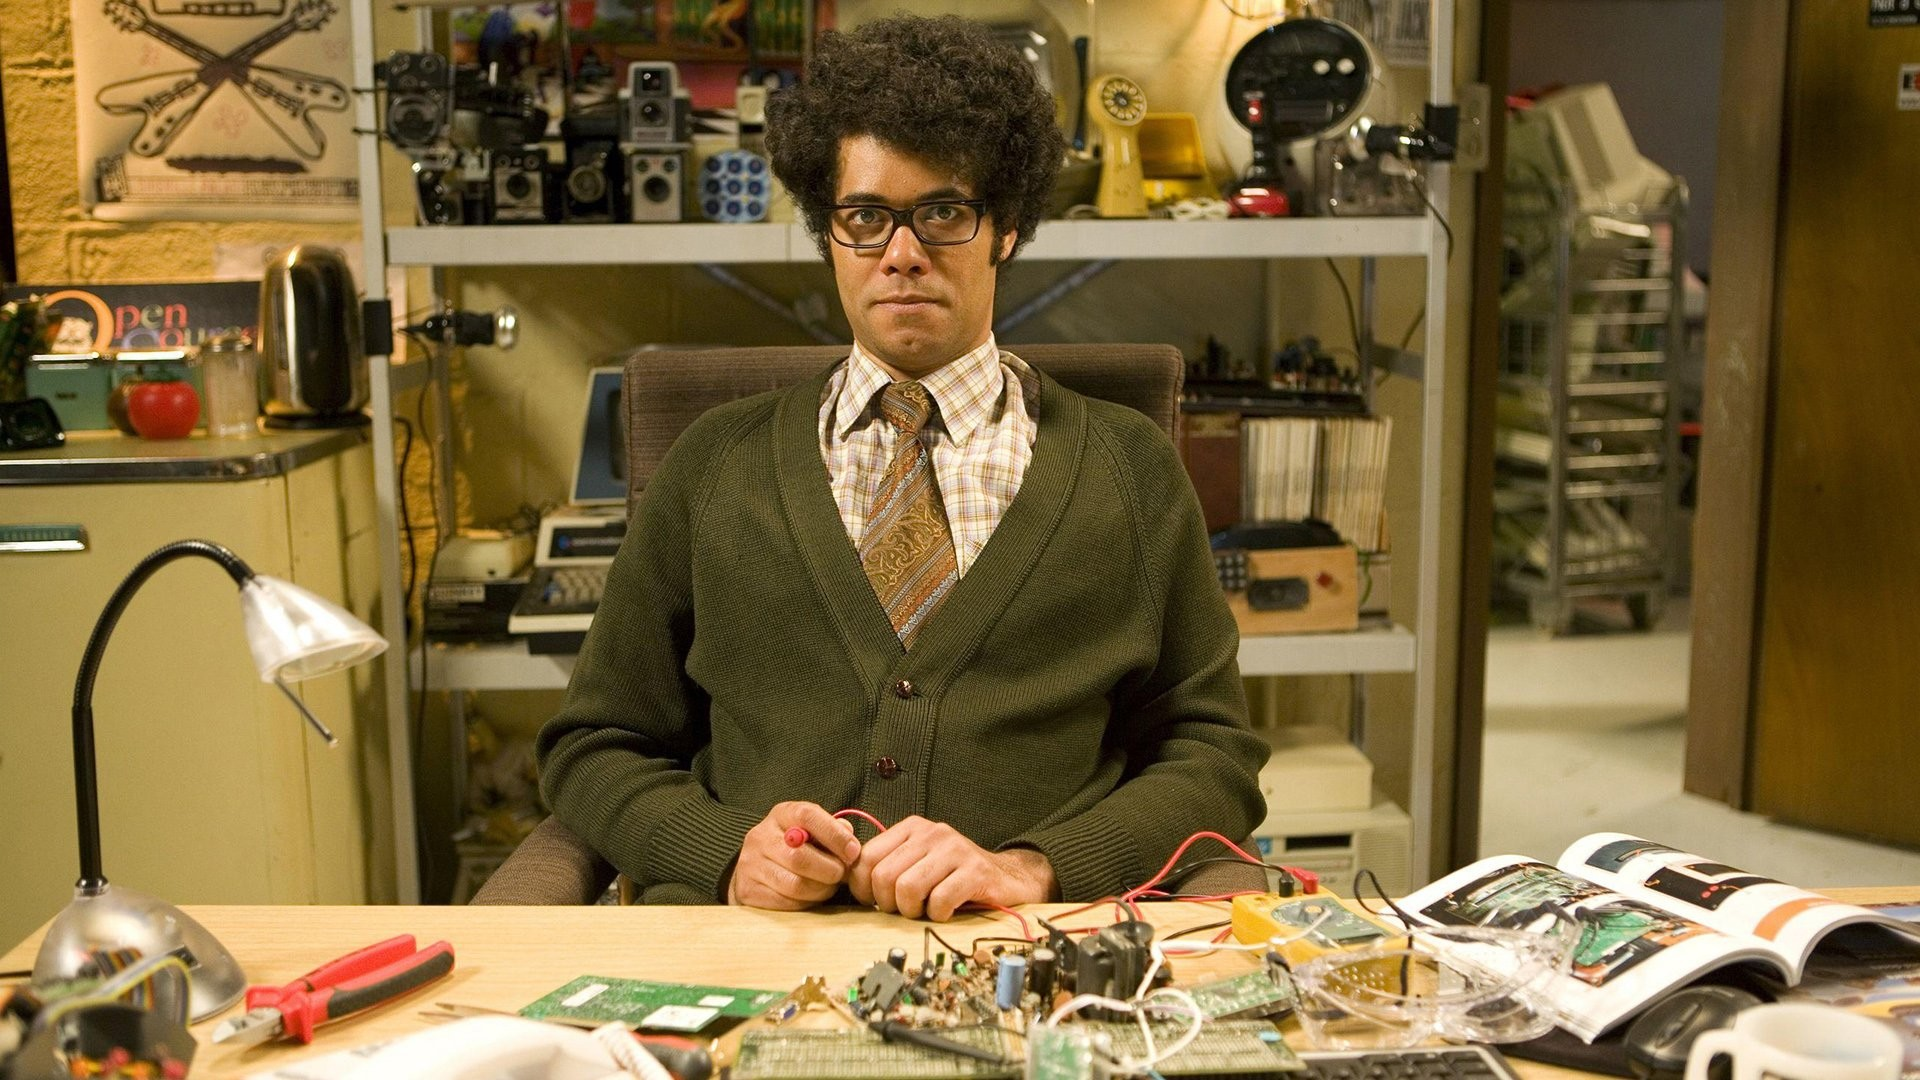 1920x1080 TV Show - The IT Crowd Maurice Moss Richard Ayoade Wallpaper